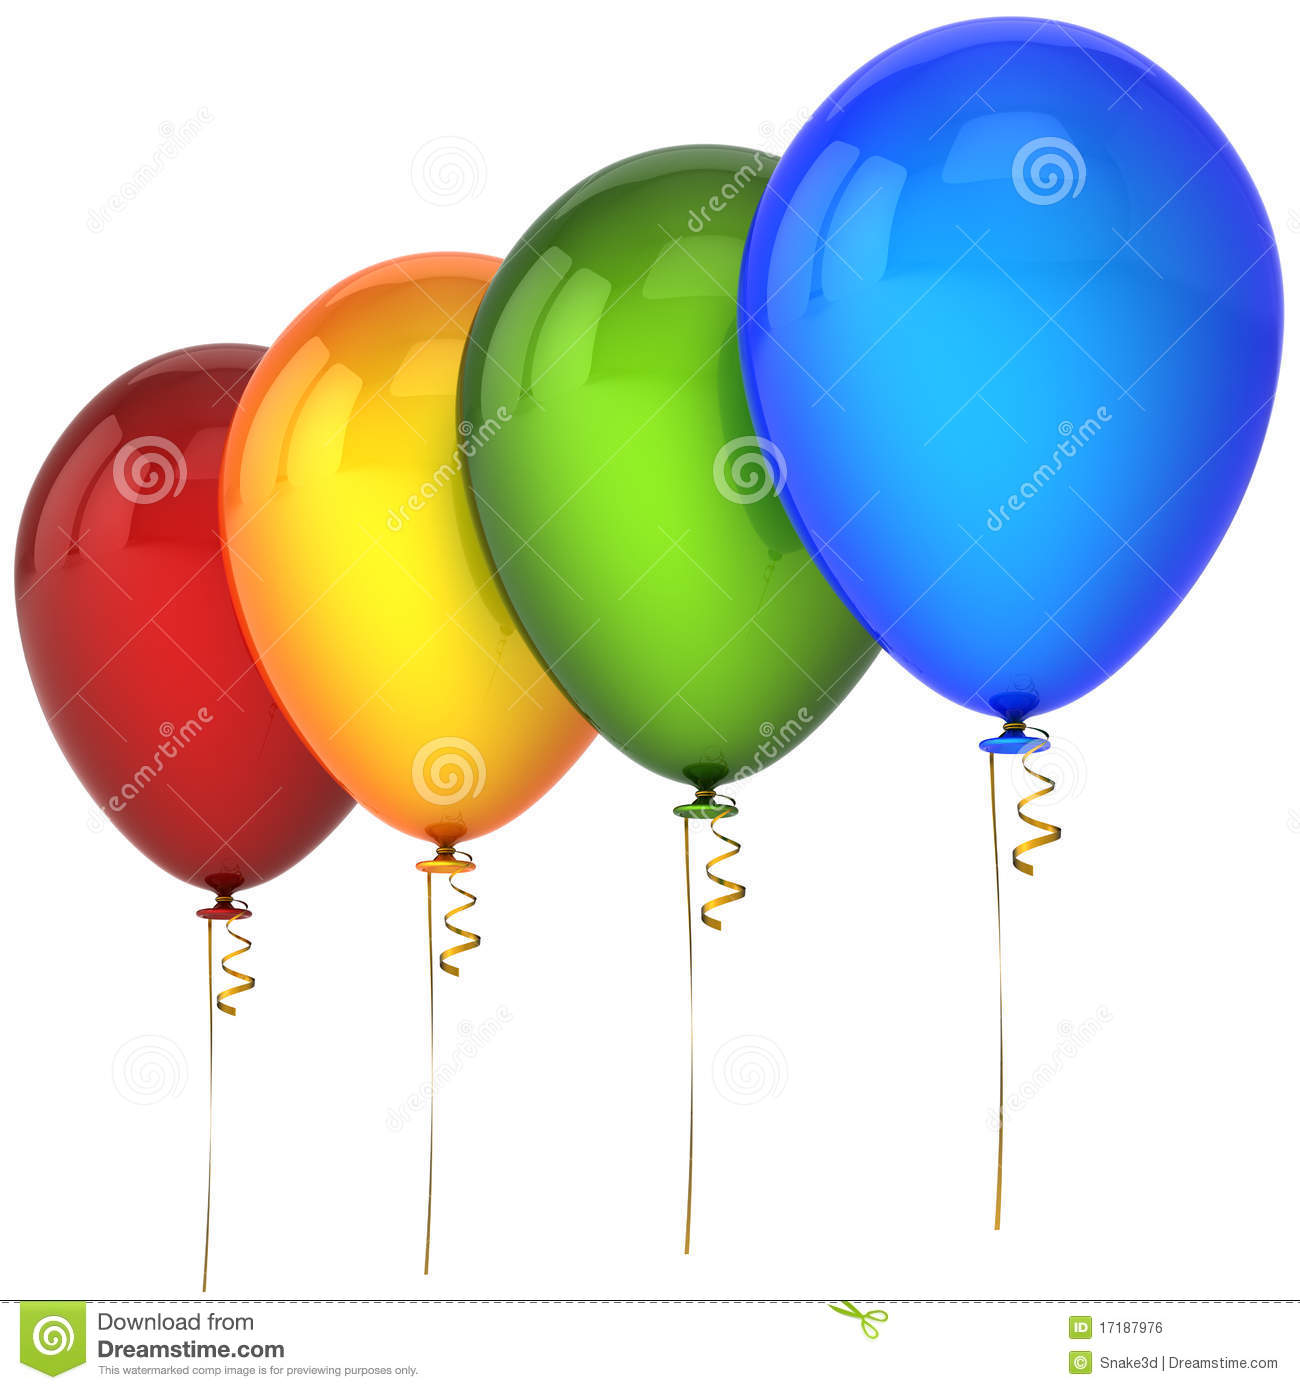 Helium Balloons In A Row Royalty Free Stock Image - Image: 17187976